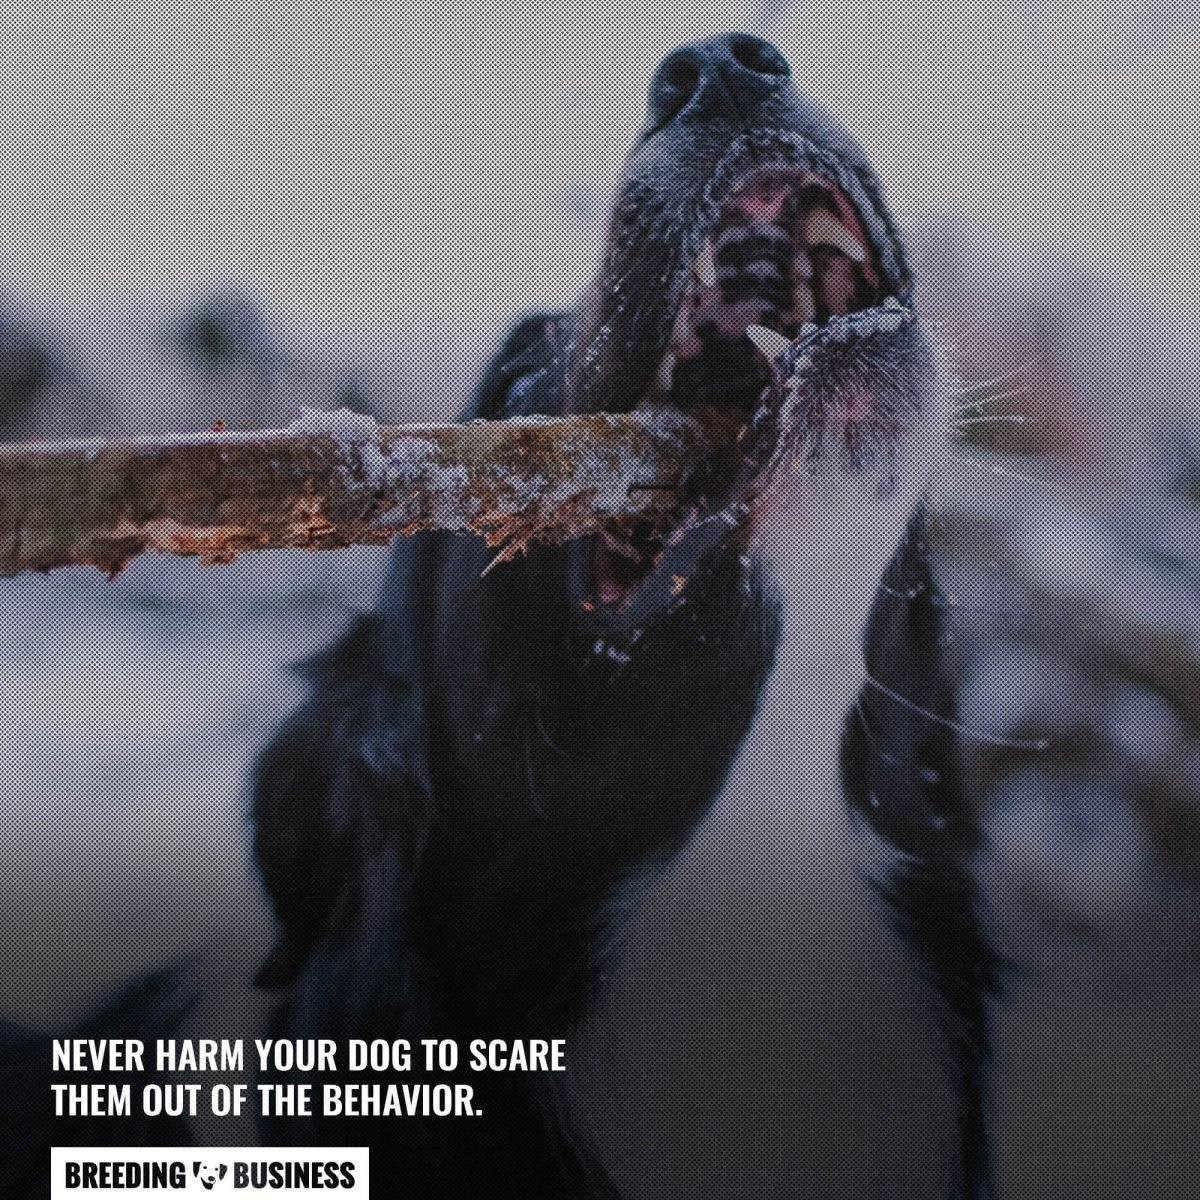 never harm your dog out of behavior